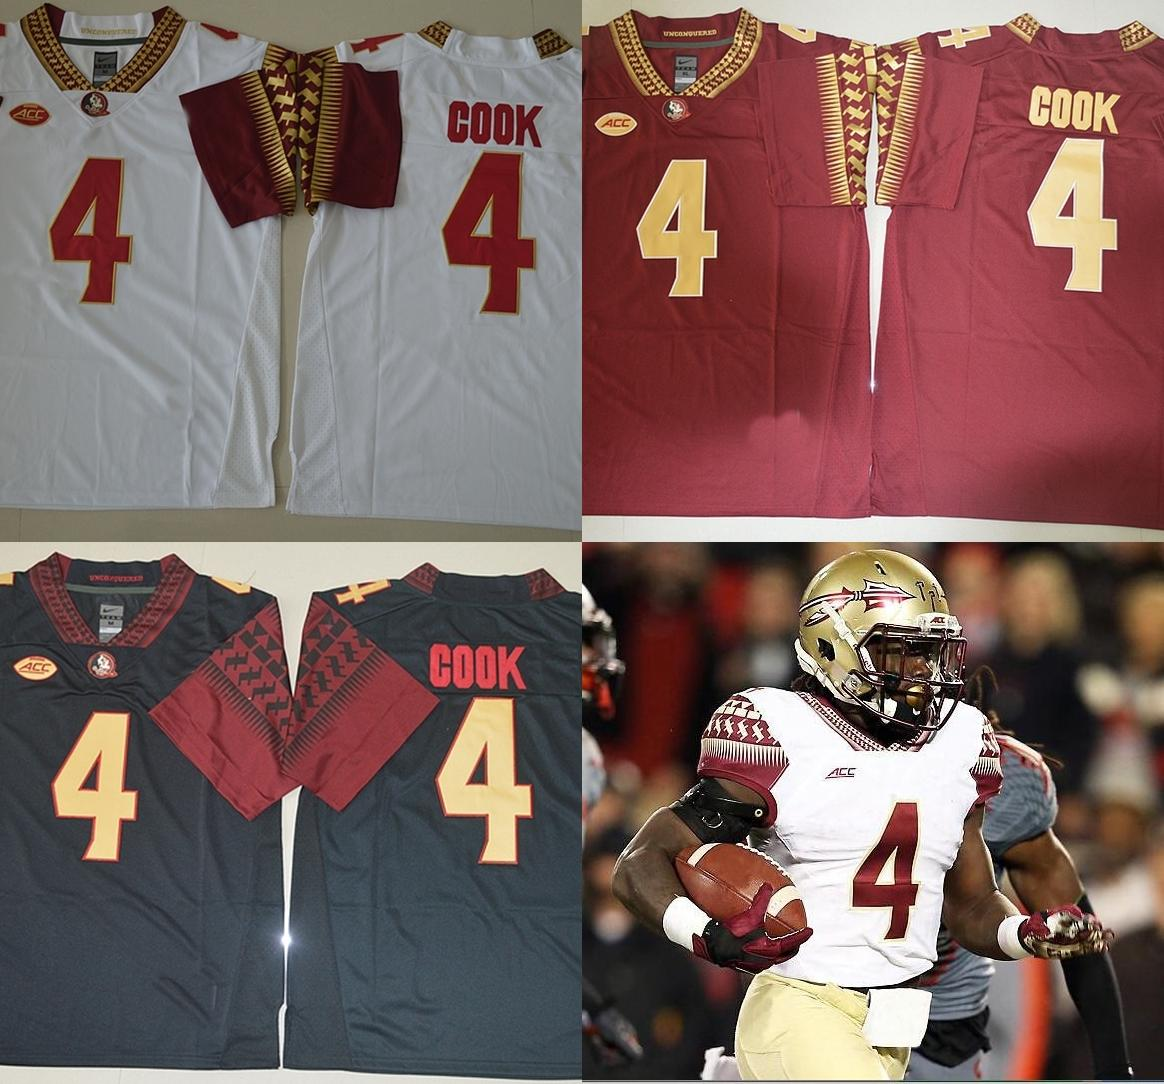 new styles ca424 1439f Dalvin Cook Jersey,#4 Florida State Seminoles FSU Embroidery College  Jerseys,Top Quality Cook red black white Jerseys,free shipping